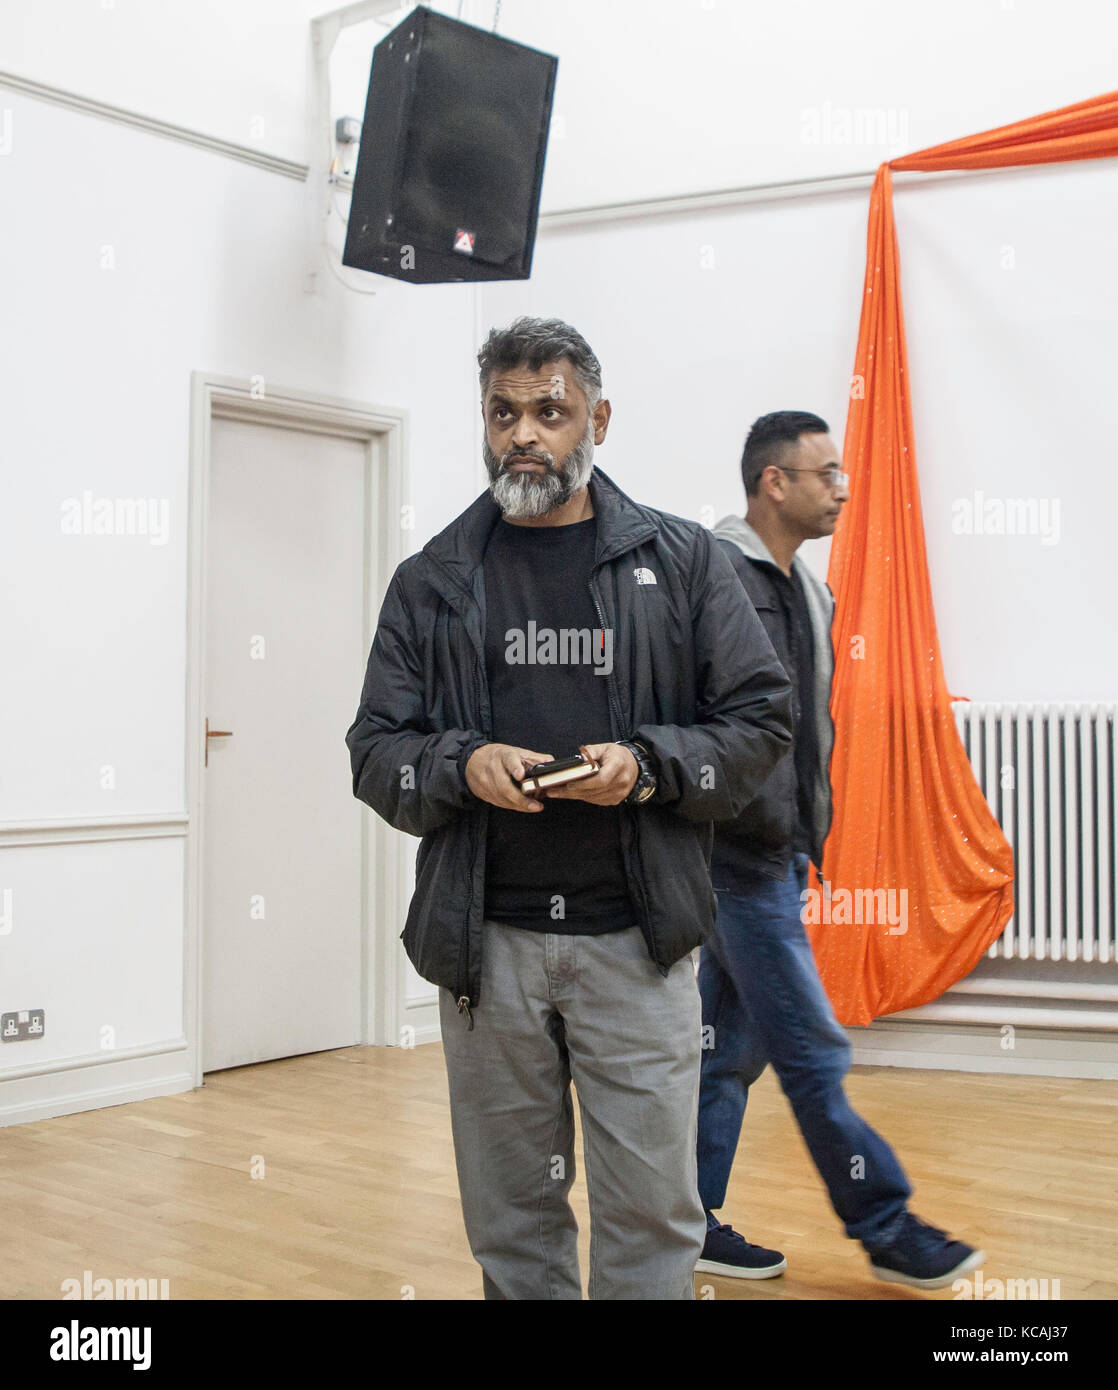 guantanamo bay moazzam begg Former guantanamo bay detainee moazzam begg has appeared in court in london charged with providing terrorist training and funding terrorism in syria.